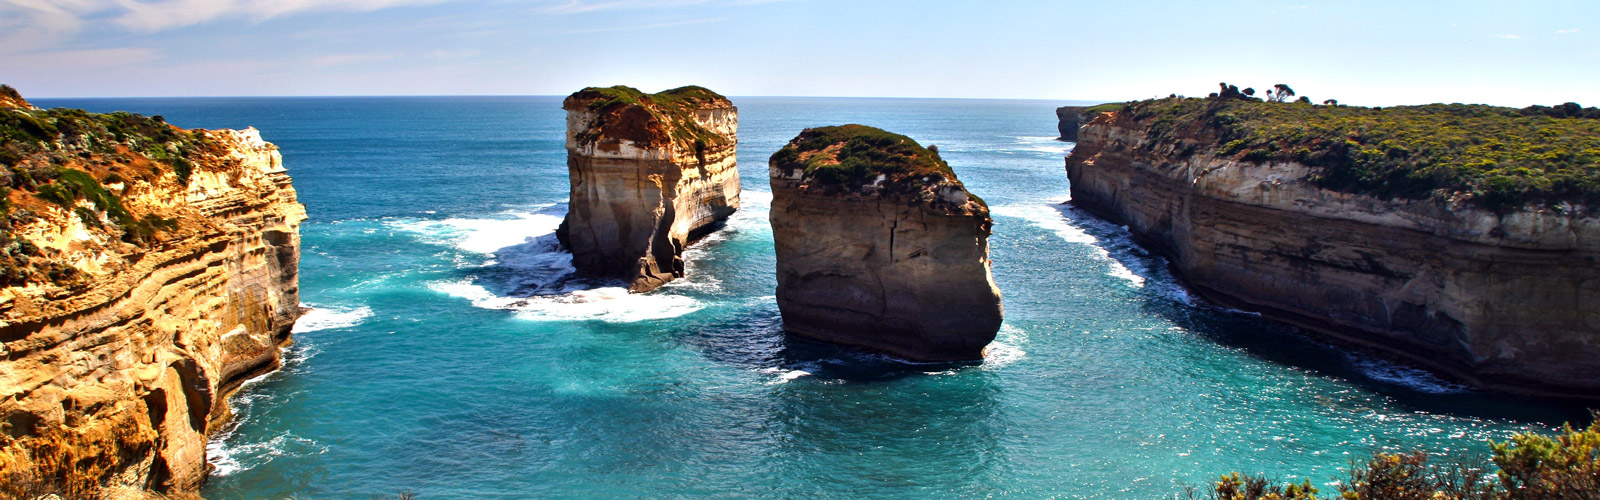 About The Great Ocean Road